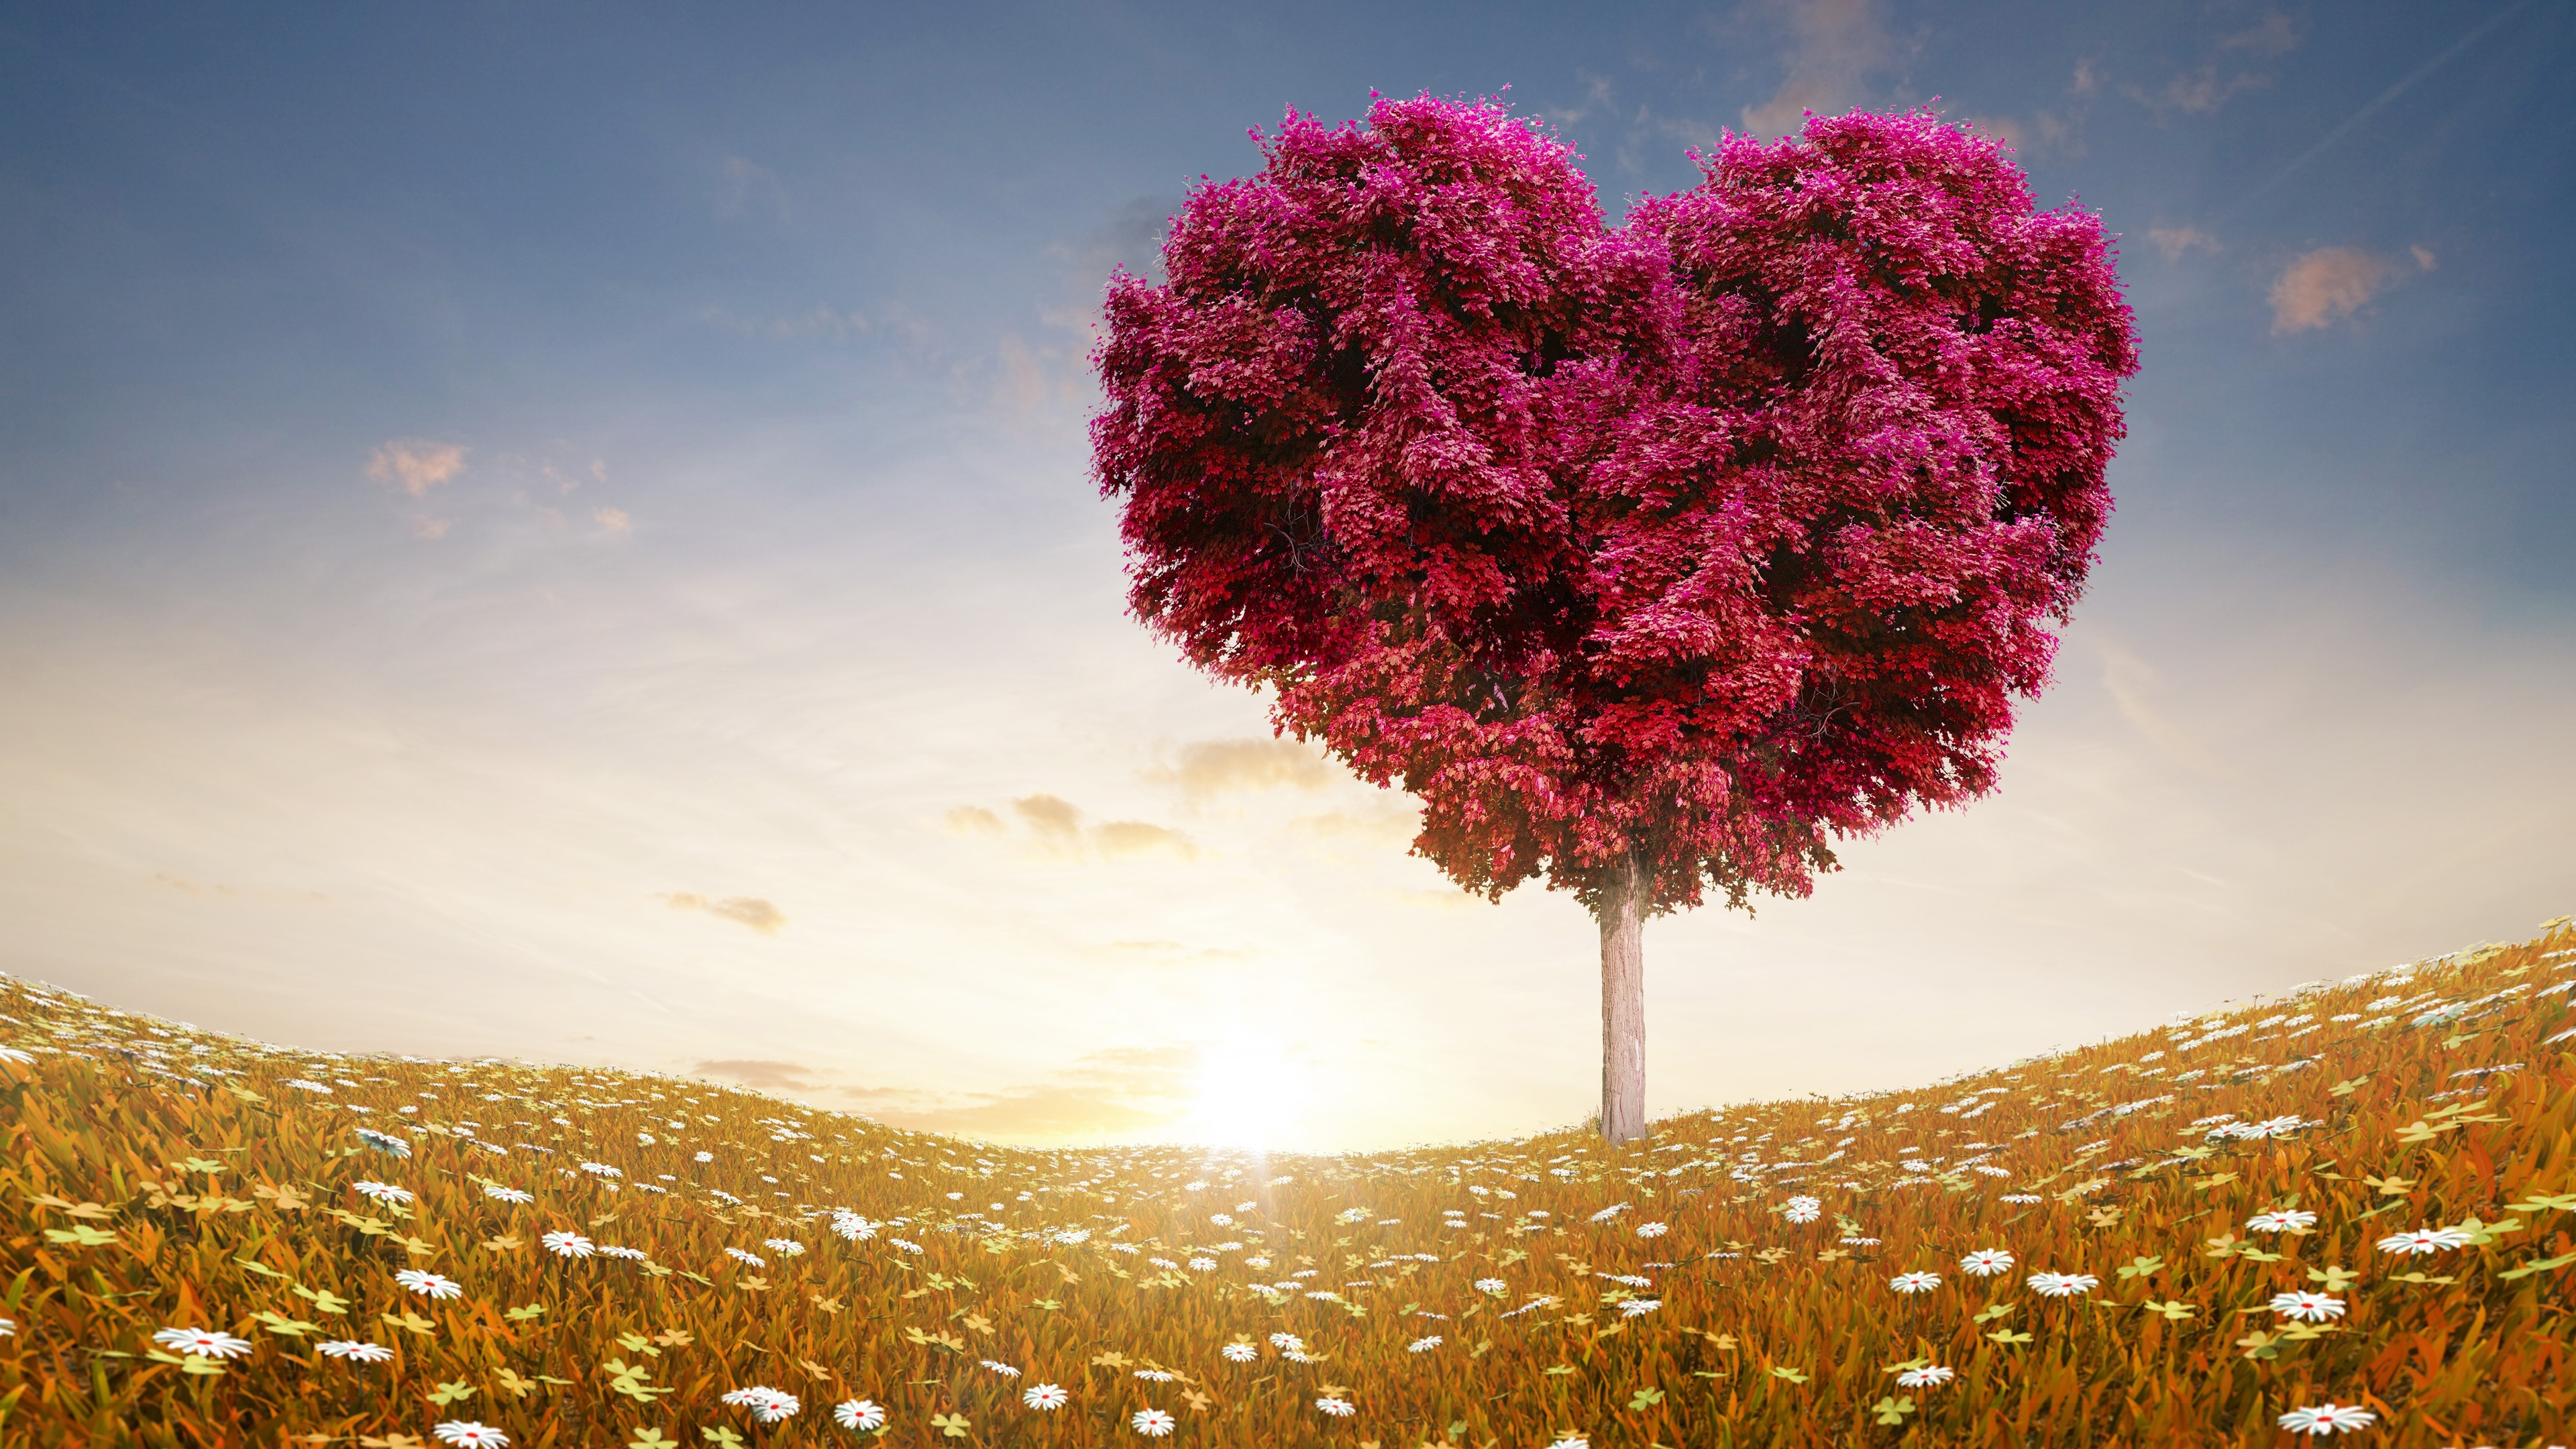 56 Love Wallpaper Backgrounds That Your Desktop Will Make You Feel Amazing